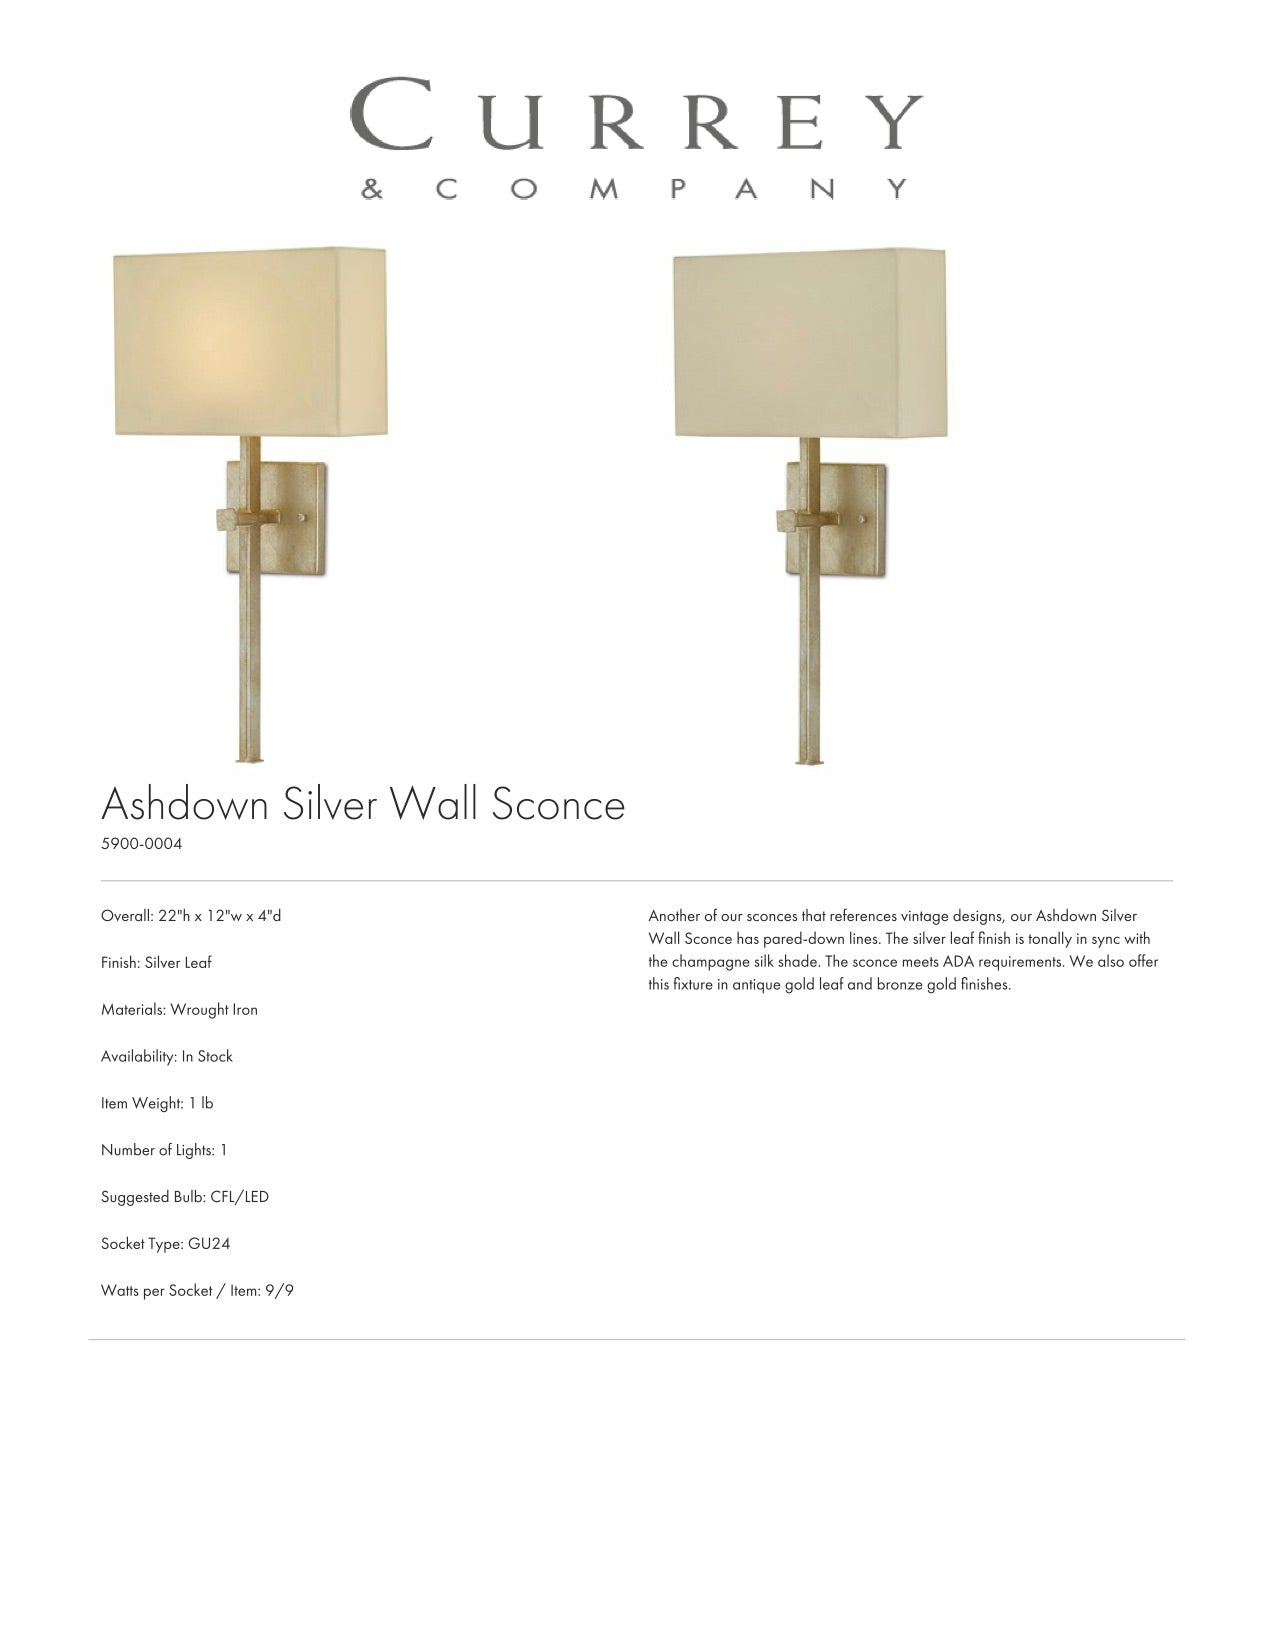 Currey & Company Ashdown Silver Wall Sconce Tearsheet